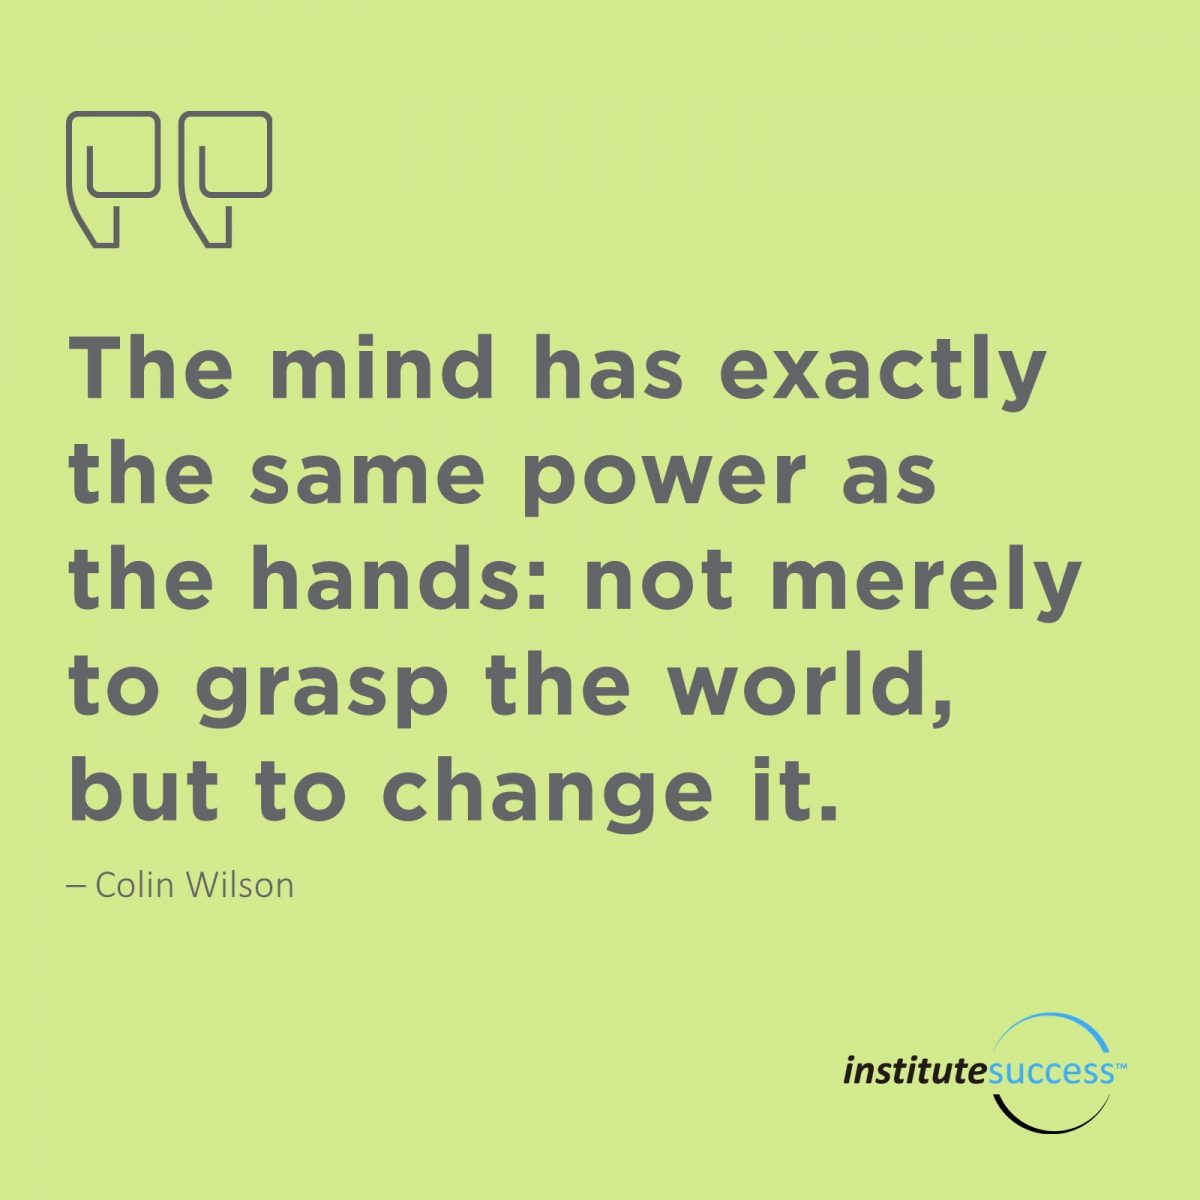 The mind has exactly the same power as the hands: not merely to grasp the world, but to change it. Colin Wilson